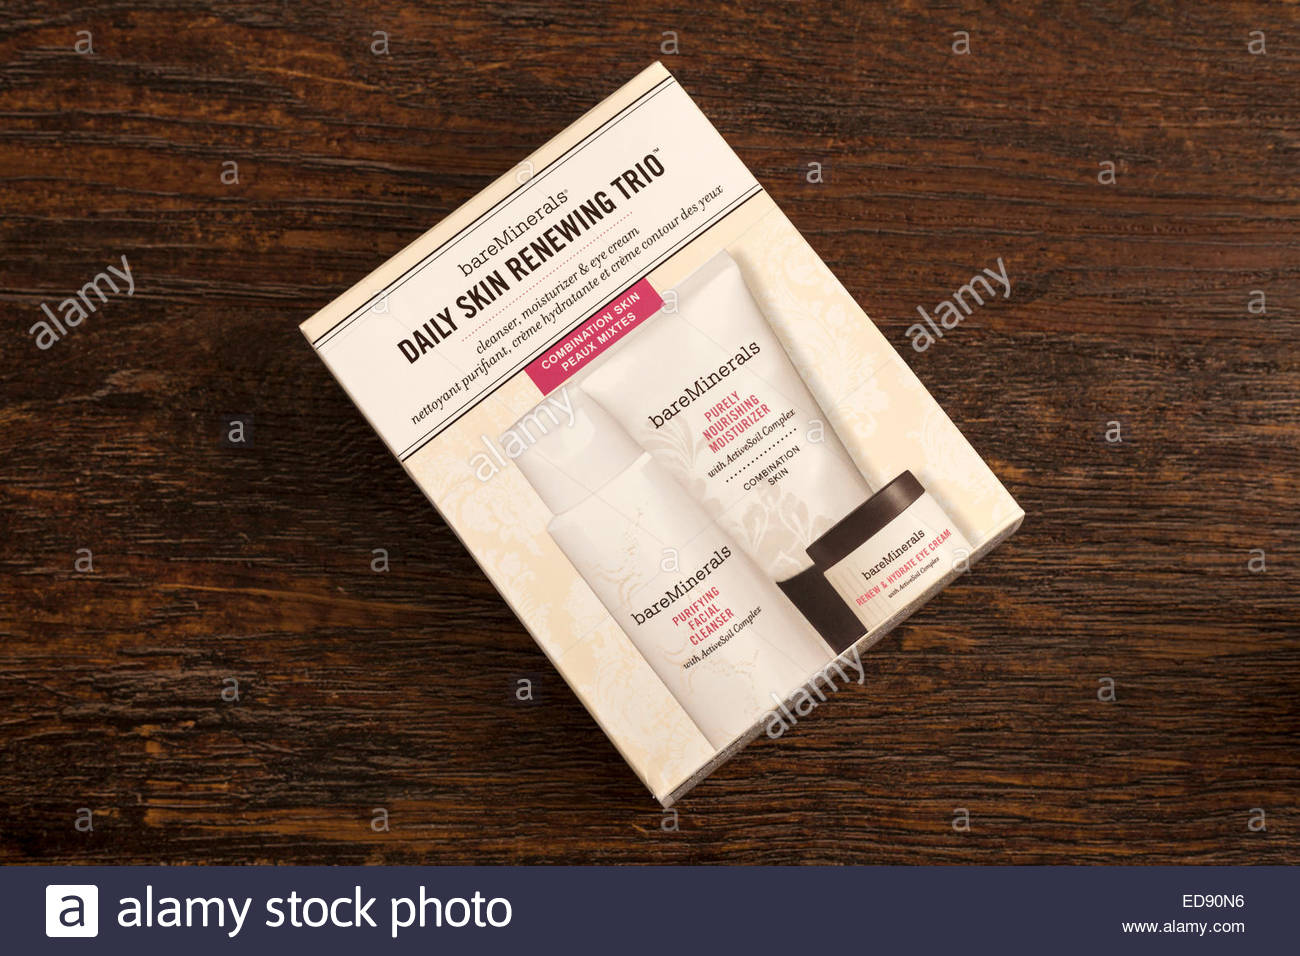 Bare Minerals Daily Skin Renewing Trio box.  For Editorial Use. - Stock Image